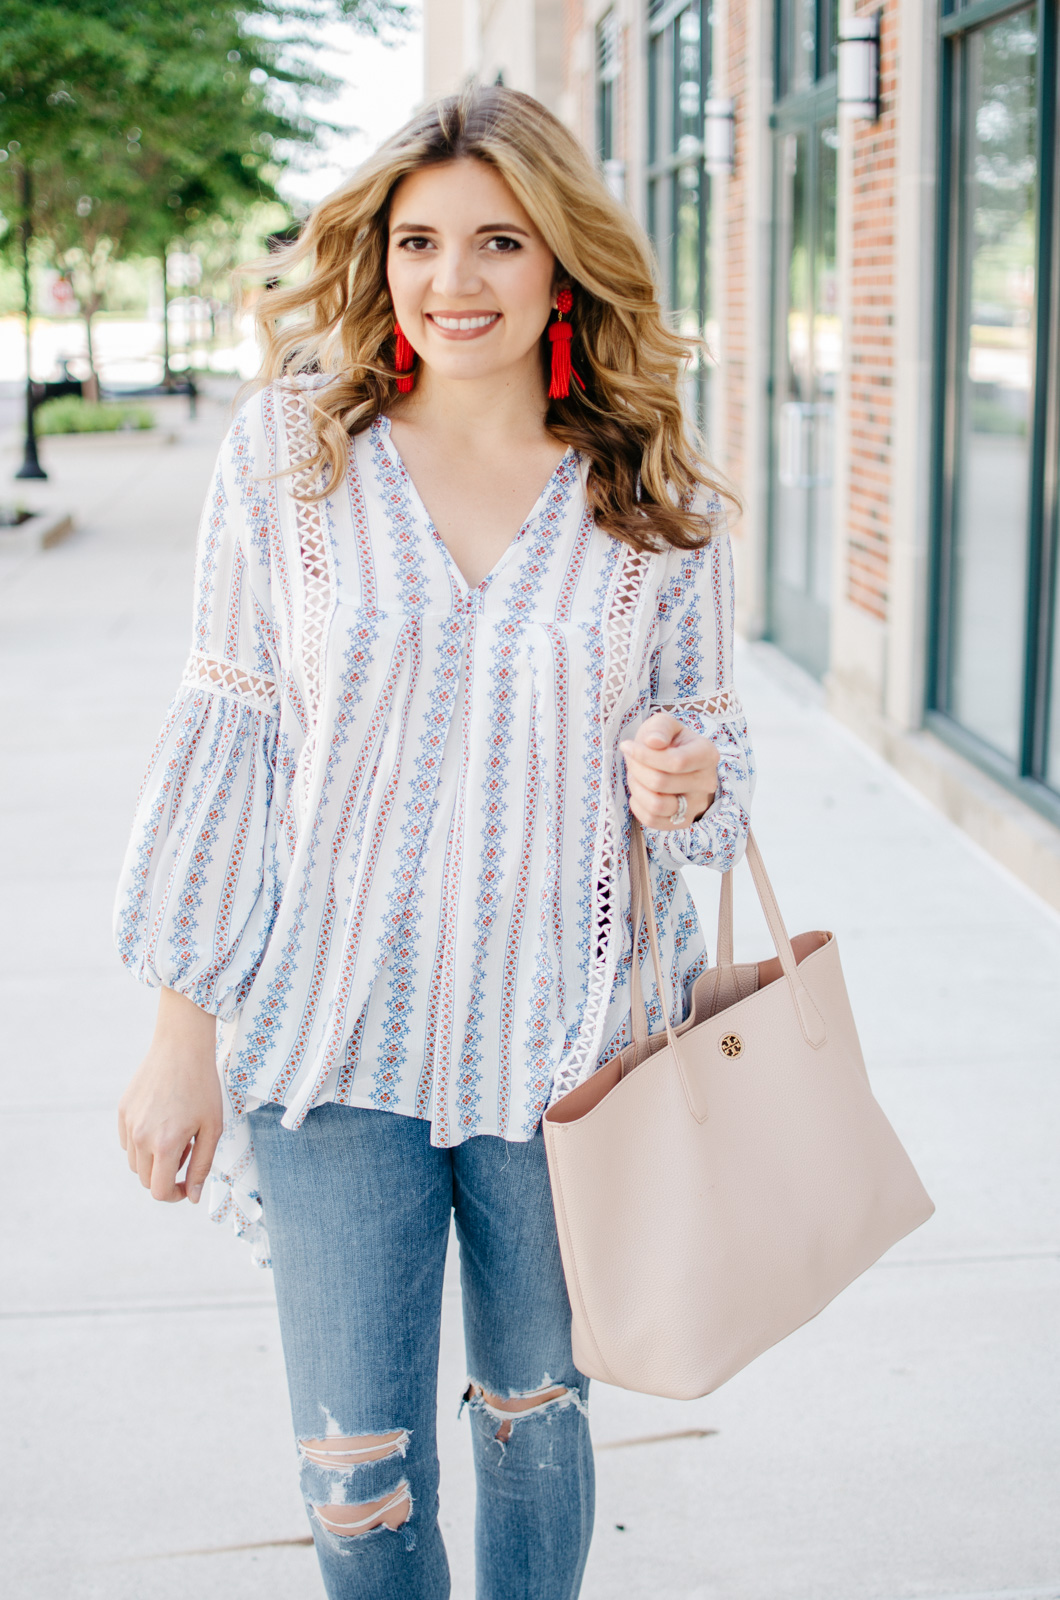 perfect boho top - boho top outfit spring | For more cute spring outfit ideas, head to bylaurenm.com